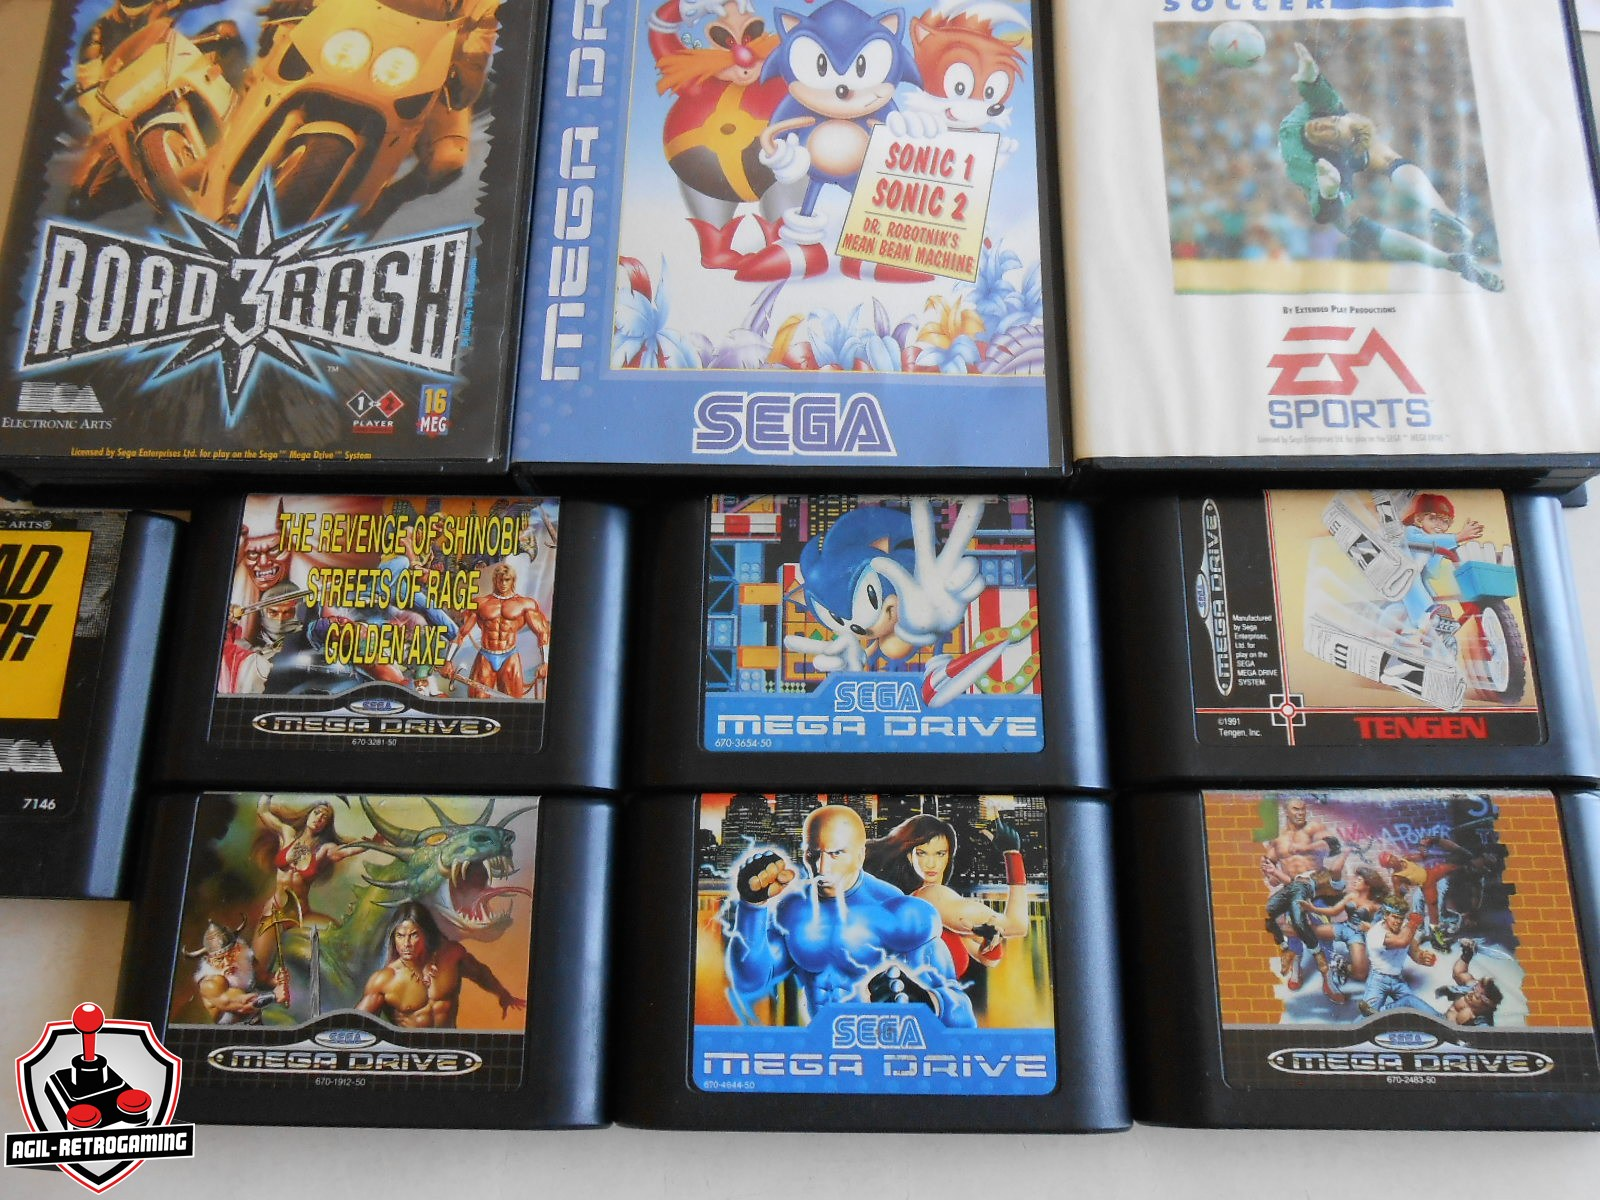 Jeux Sega Megadrive : Streets Of Rage 2 & 3, Golden Axe 2, Road Rash 2 & 3